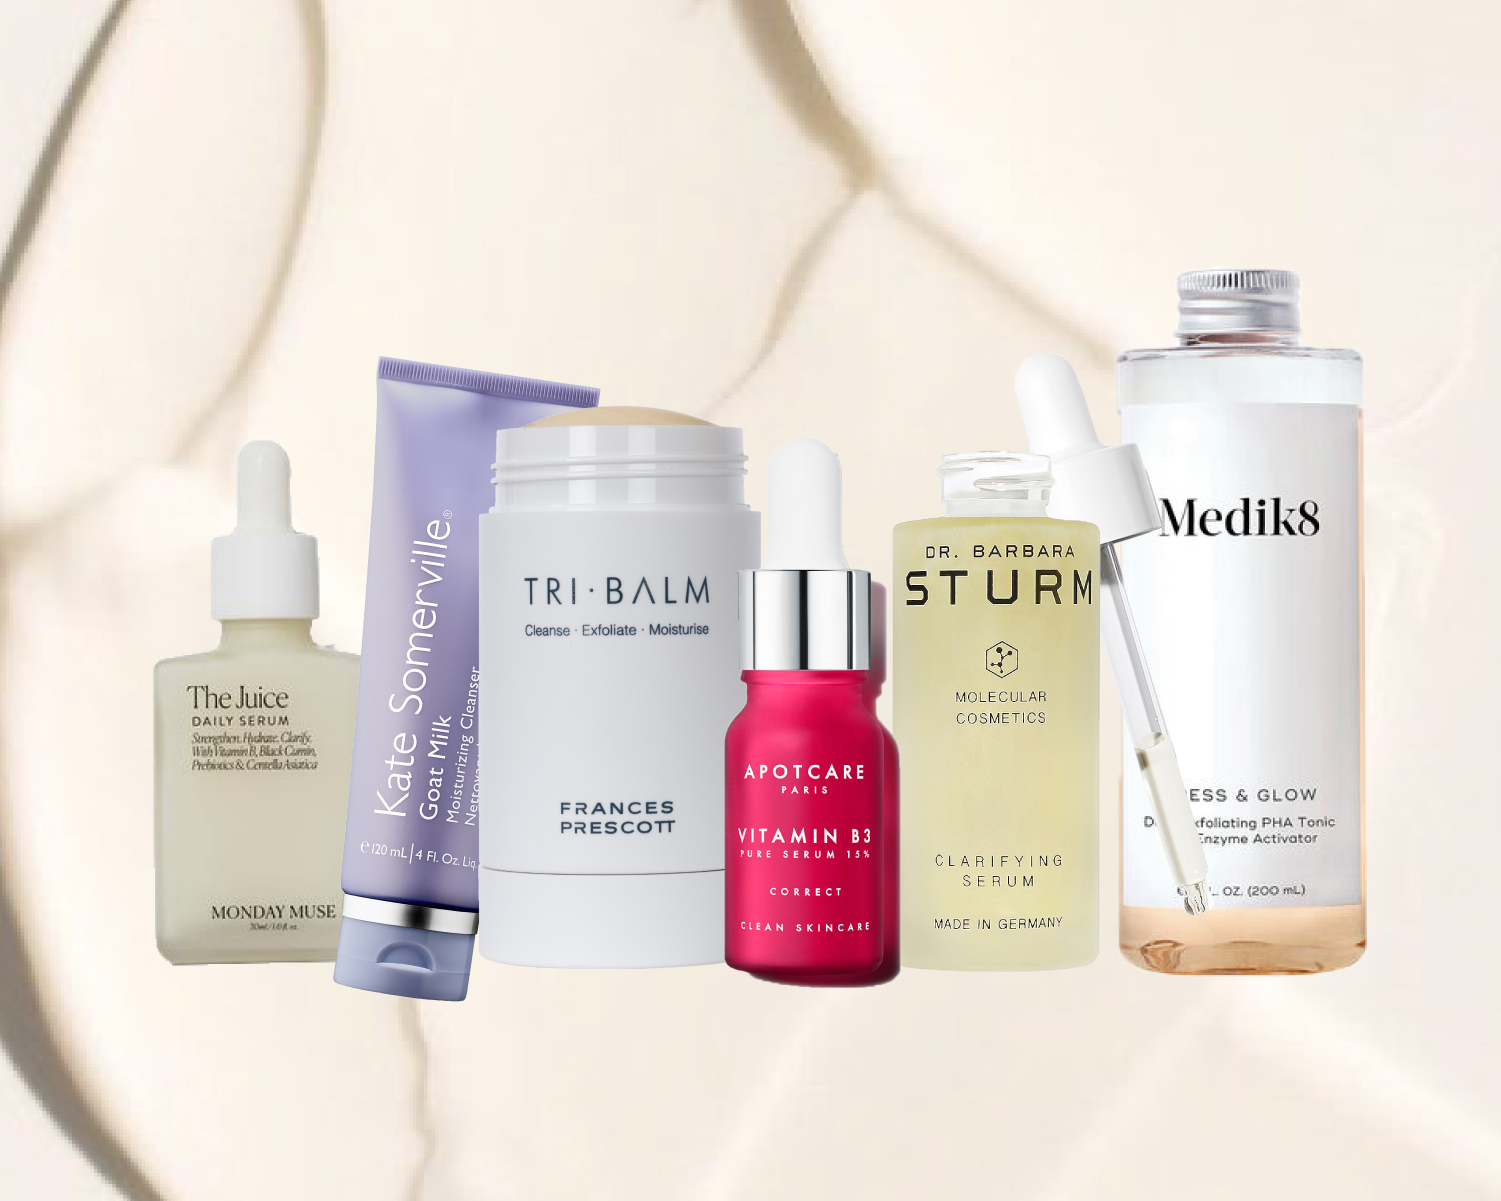 Megan and Ksenia's autumn empties and replacements